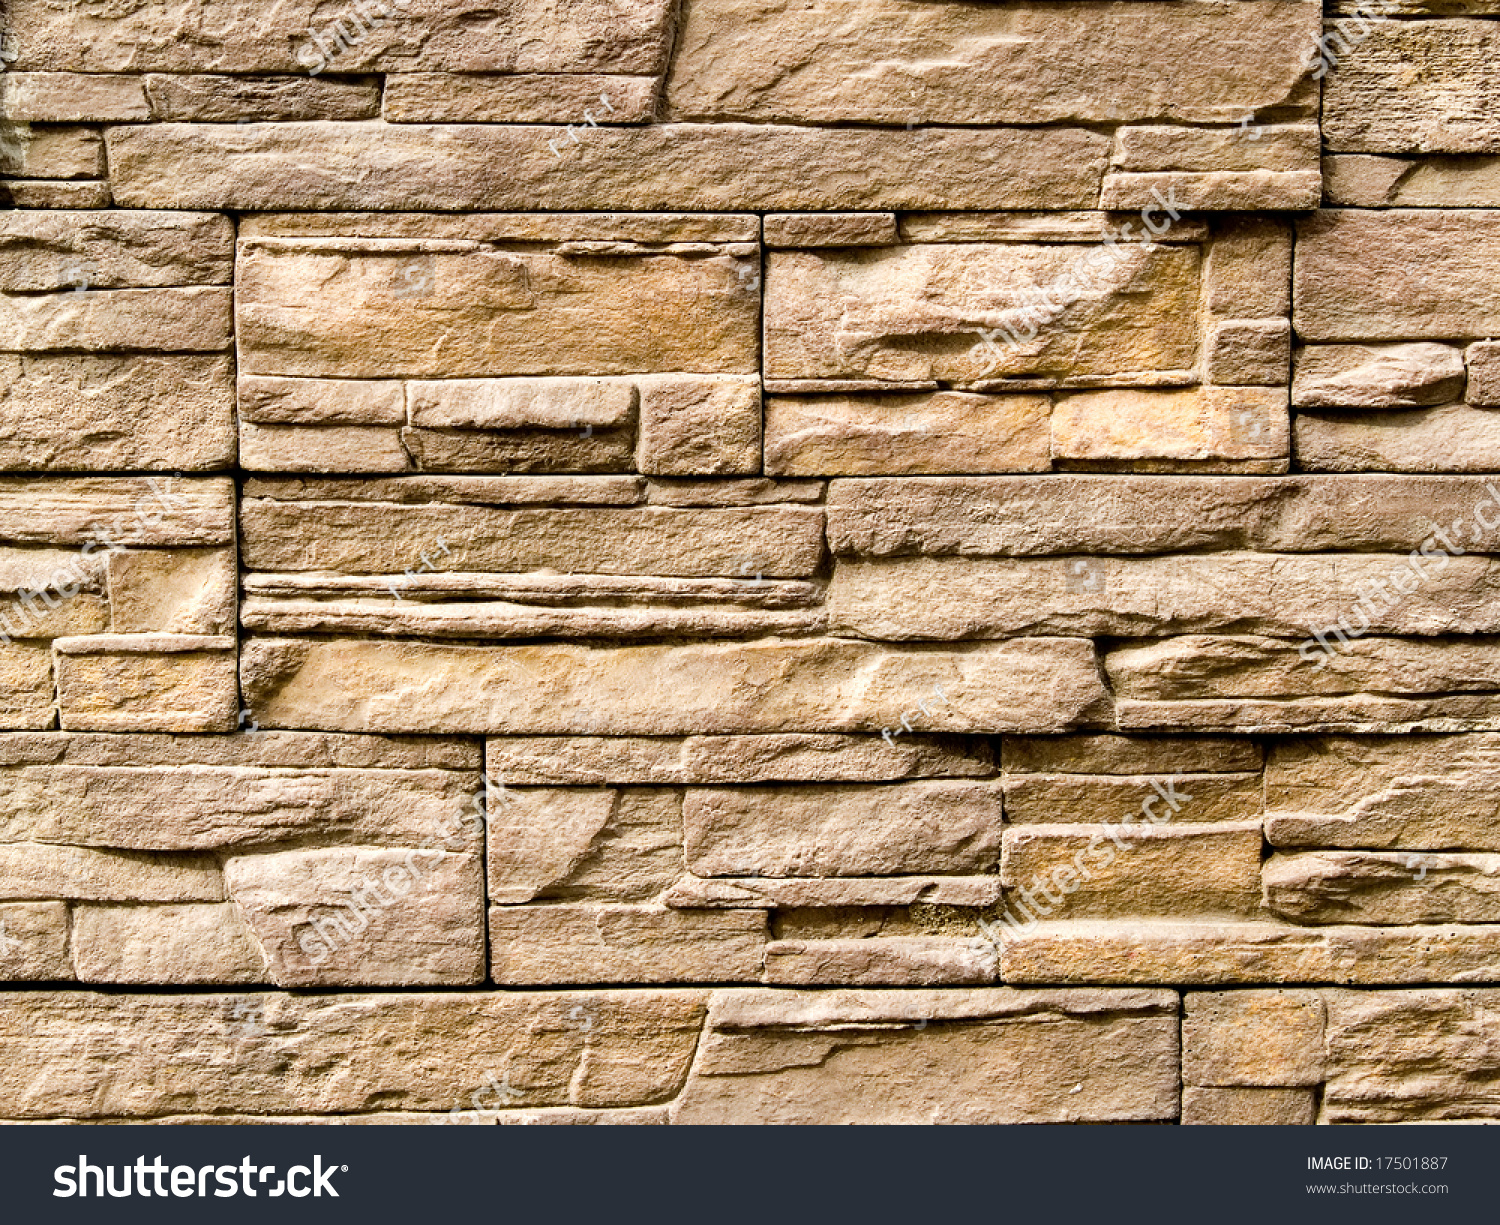 Decorative stone wall roselawnlutheran rough decorative stone wall for a background amipublicfo Image collections